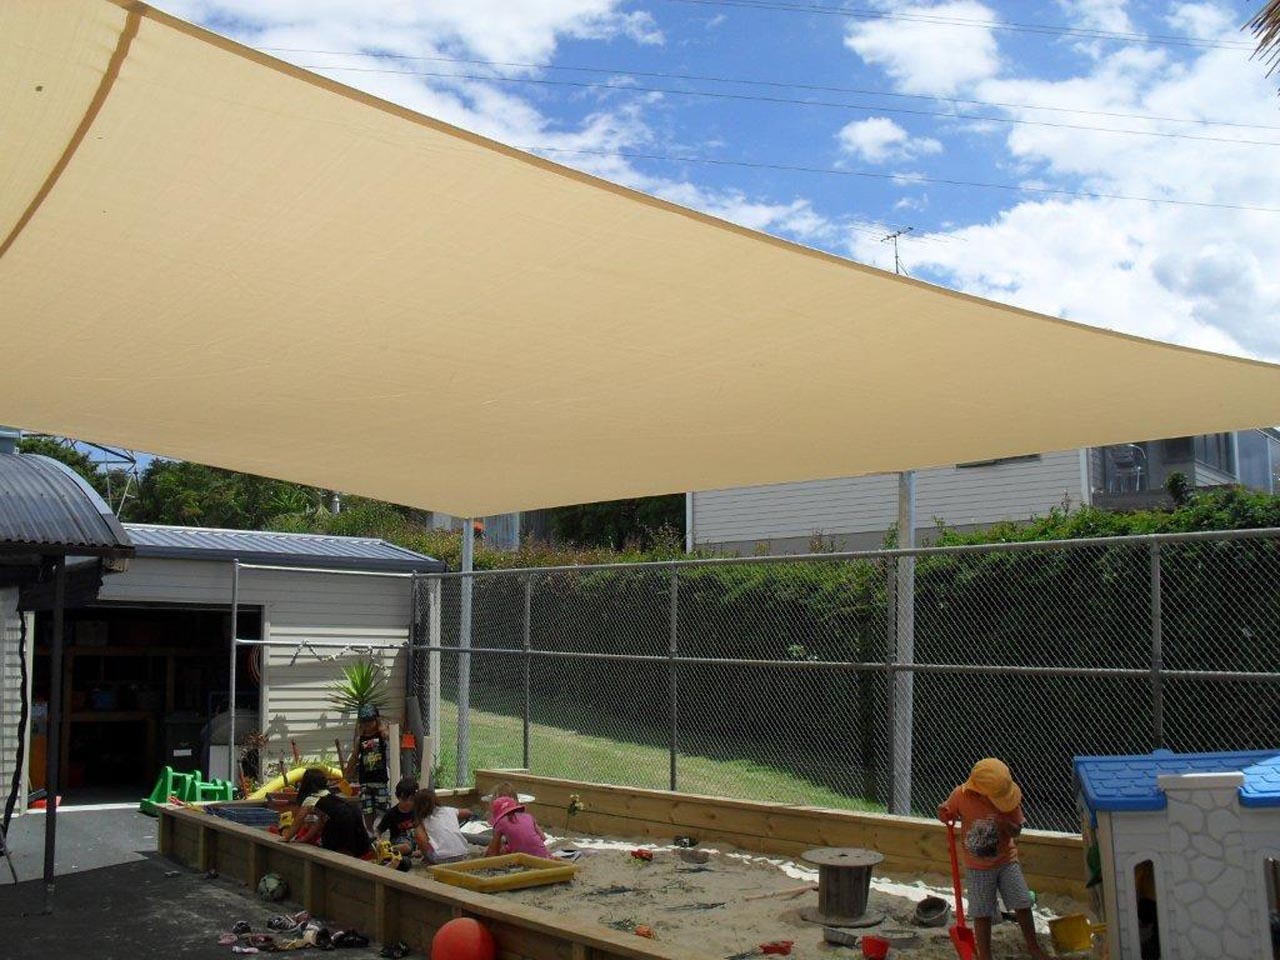 Shade Sail Commercial Freburg pre school 1 - Commercial Gallery